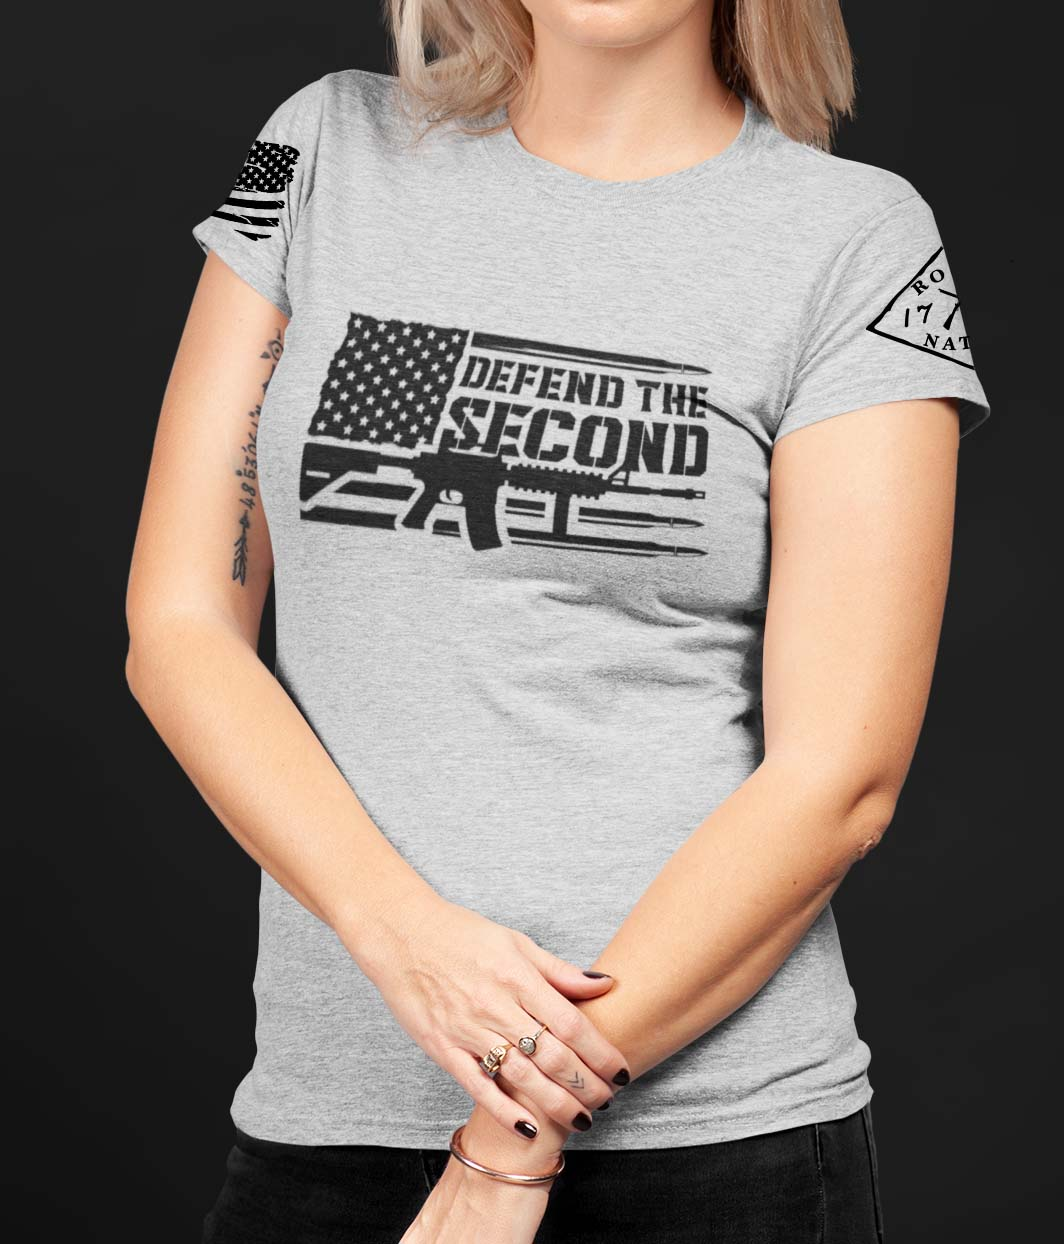 Defend the 2nd on a Womens Light Heather Grey T-Shirt